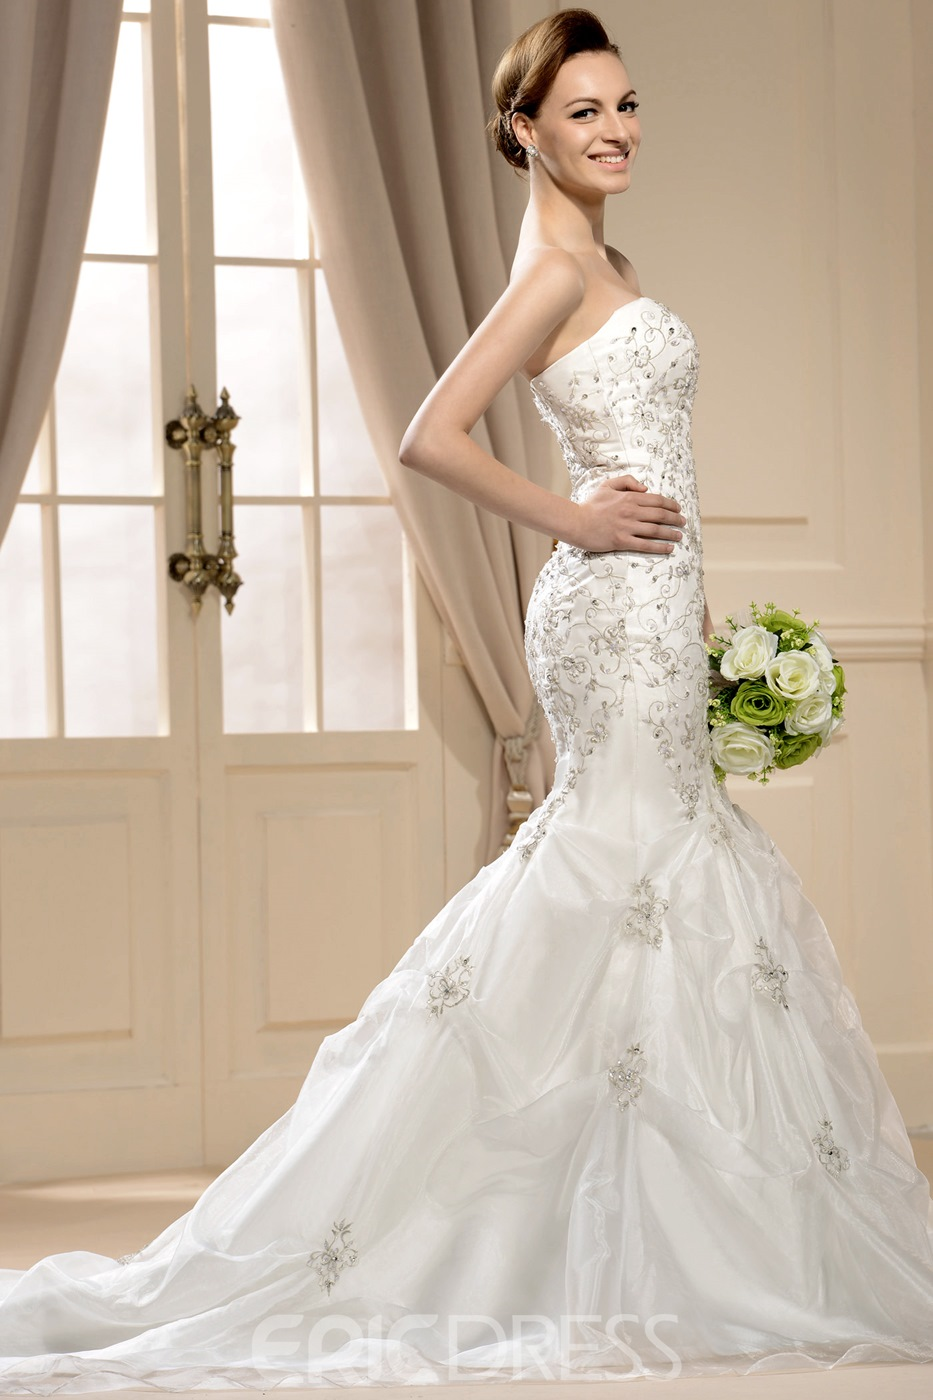 Gorgoues Mermaid Strapless Embroidery Court Train Wedding Dress